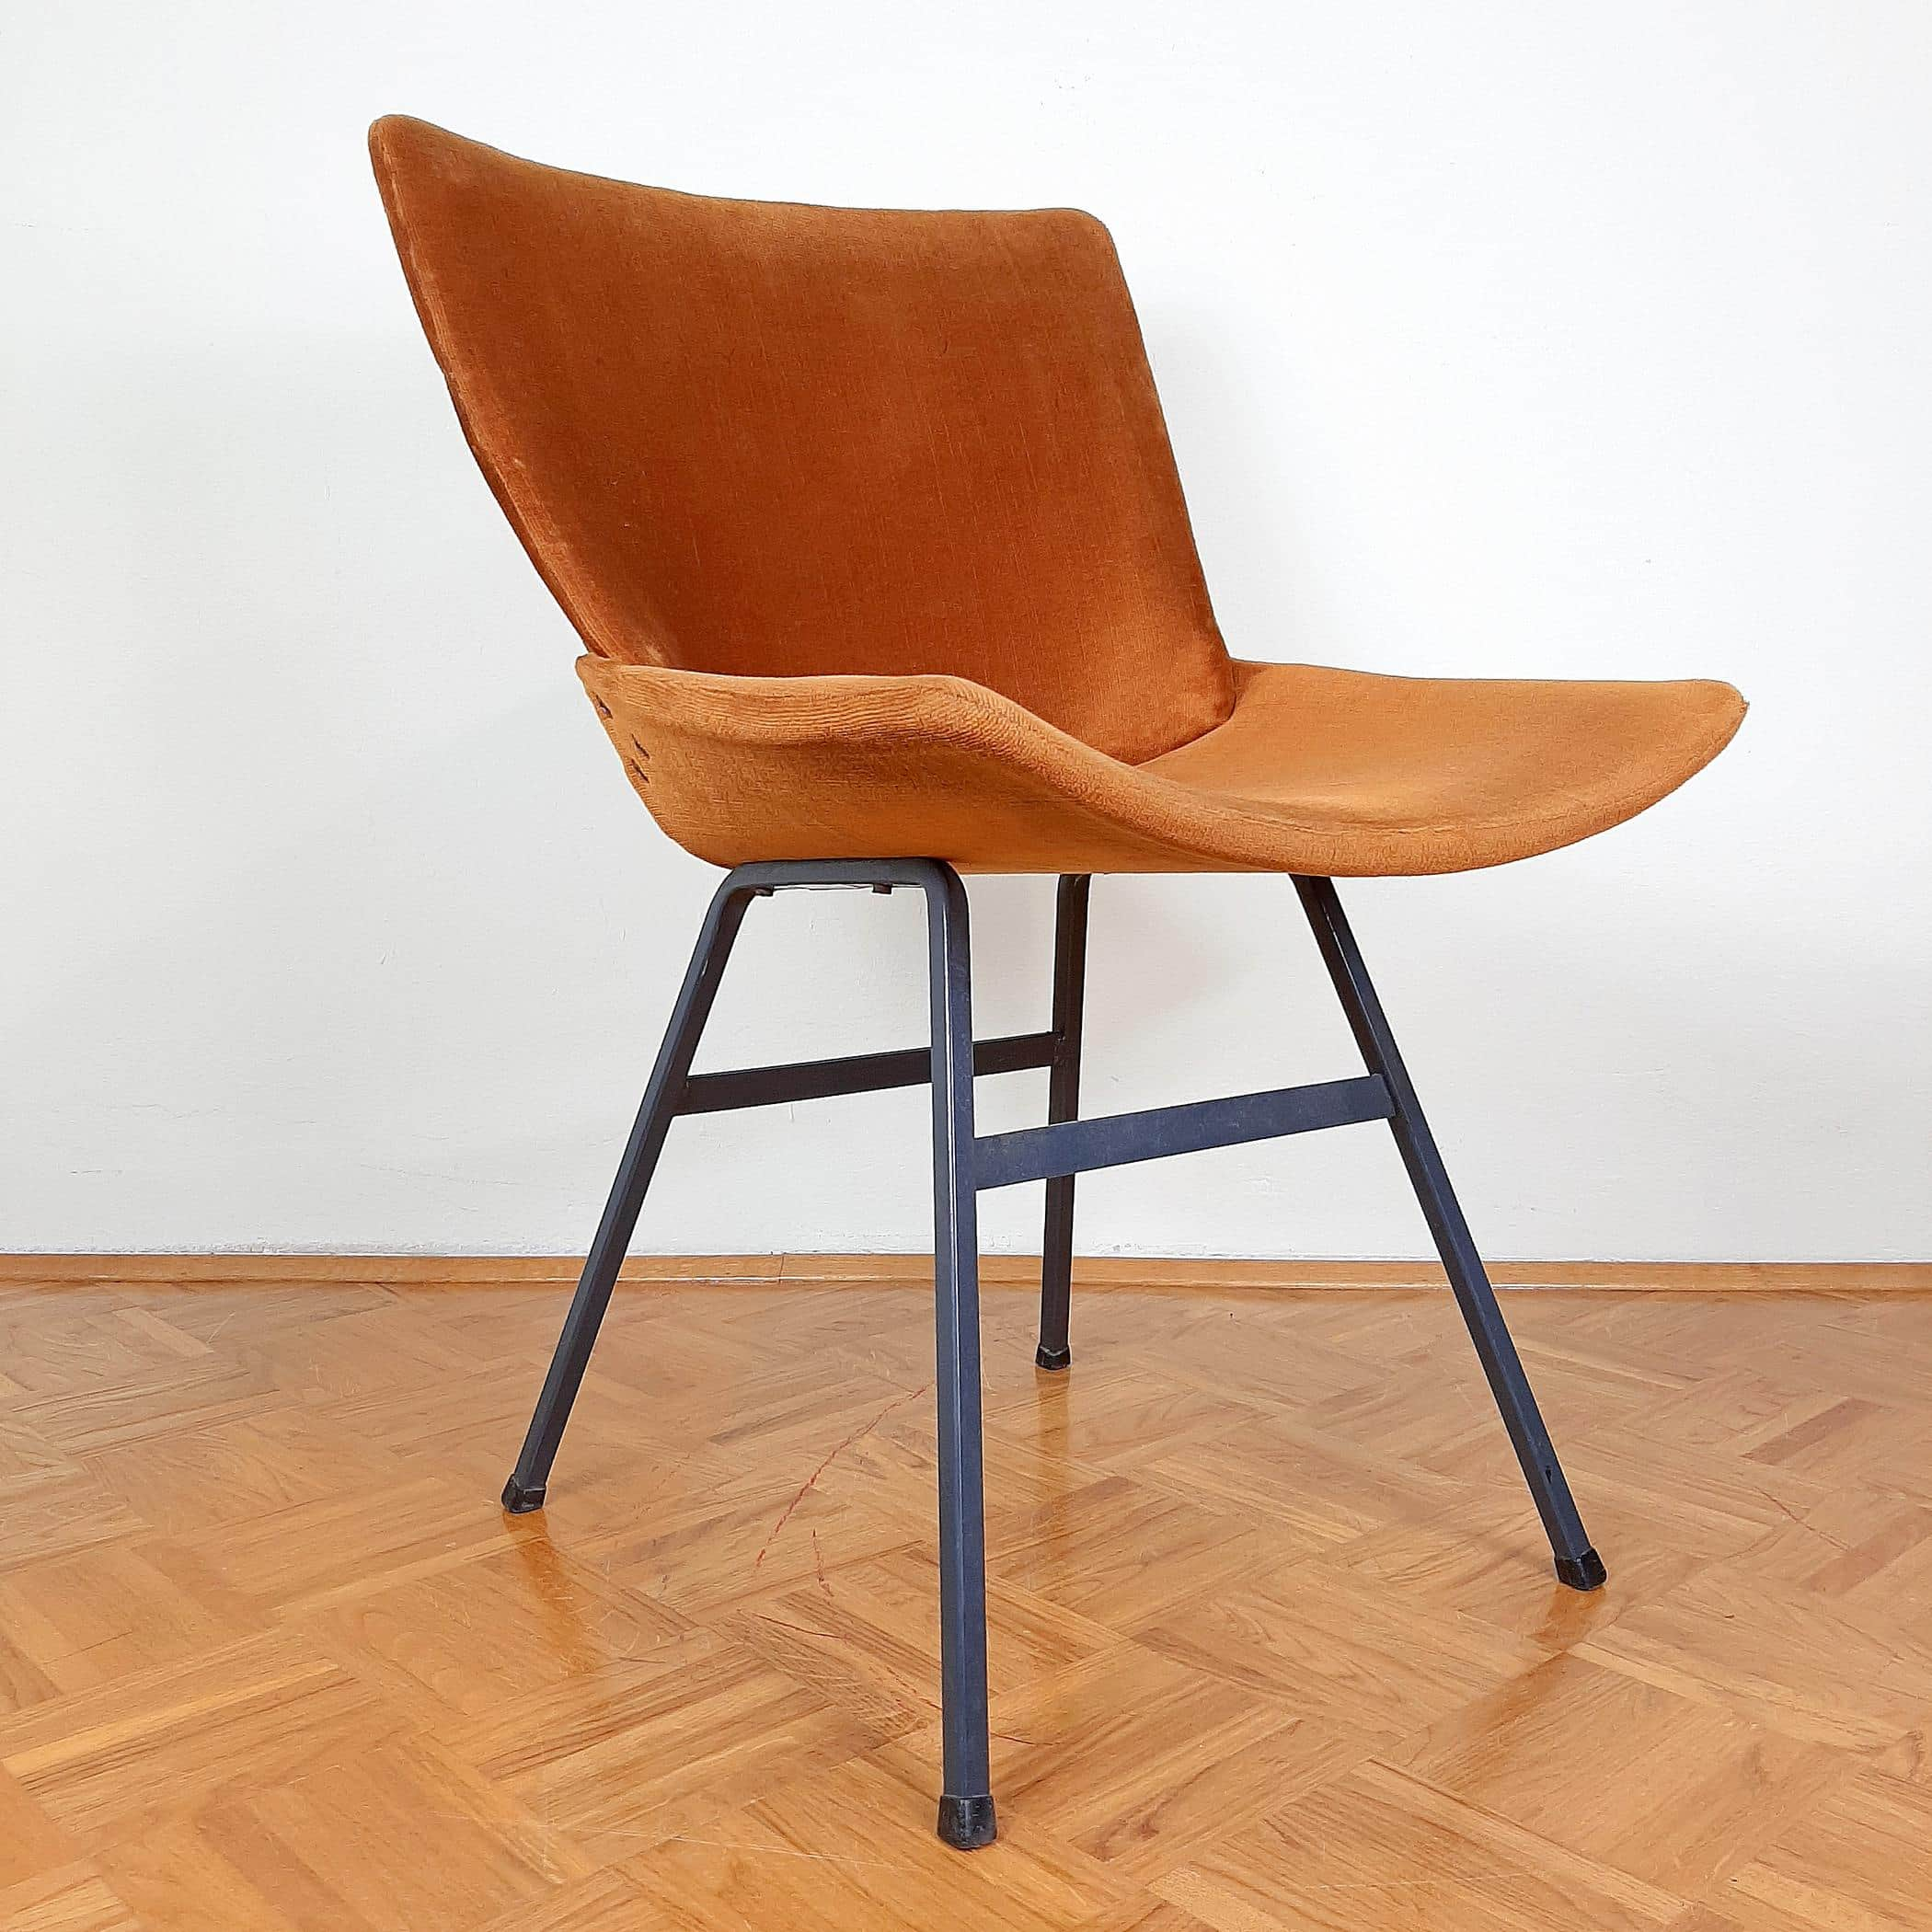 Mid-century Original Vintage Chair Lupina From Niko Kralj For Stol Kamnik 1960s Retro Lounge Chair Office Chair Ginger